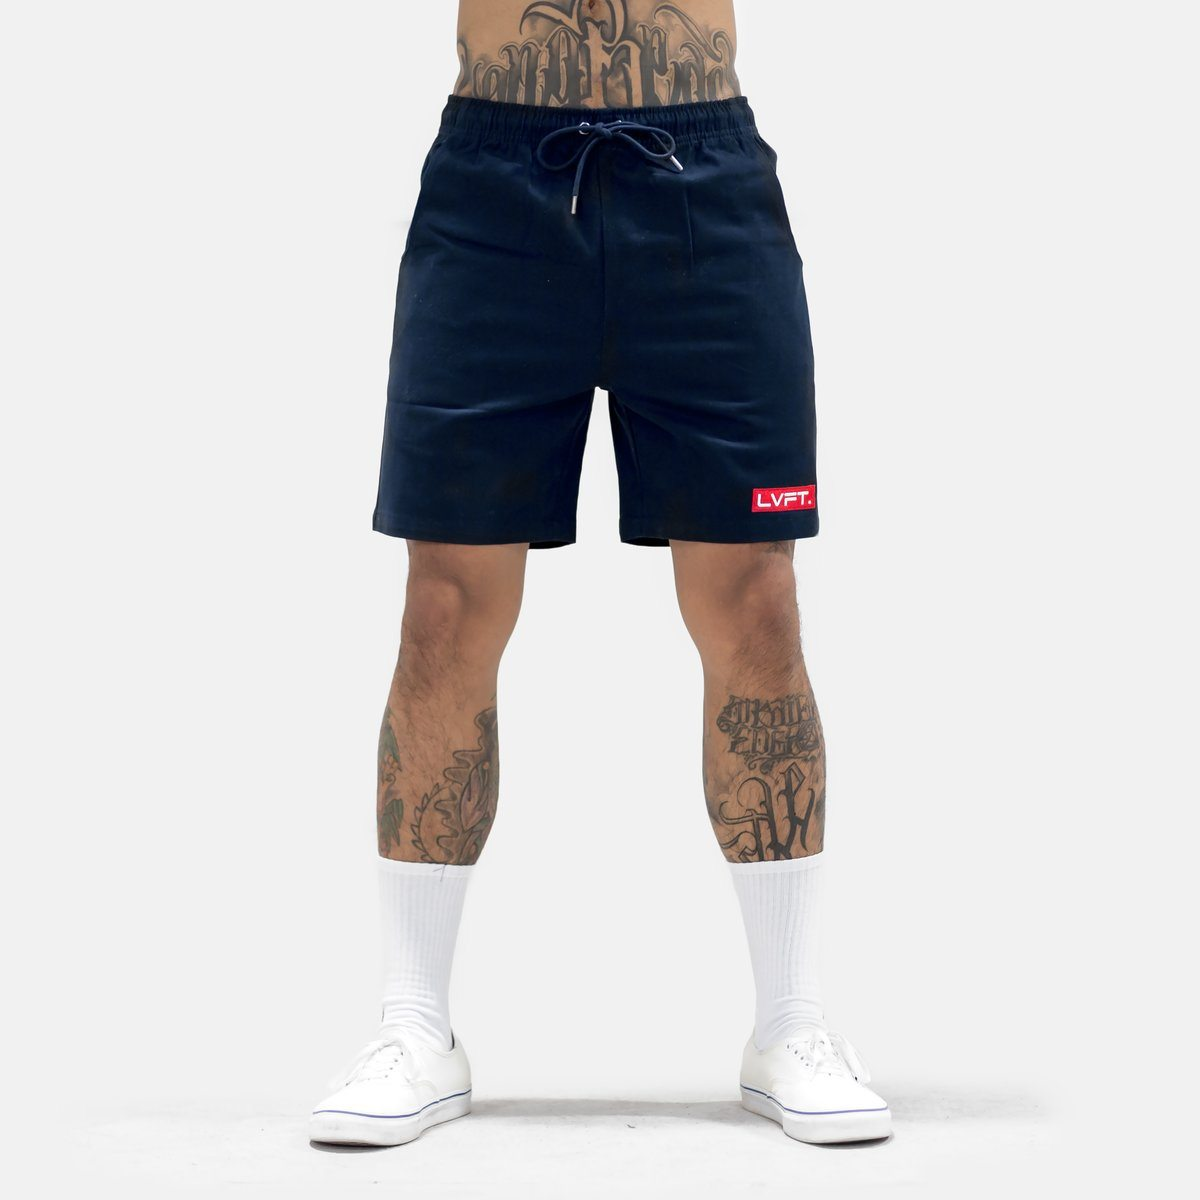 Live Fit Lifestyle Shorts-Navy